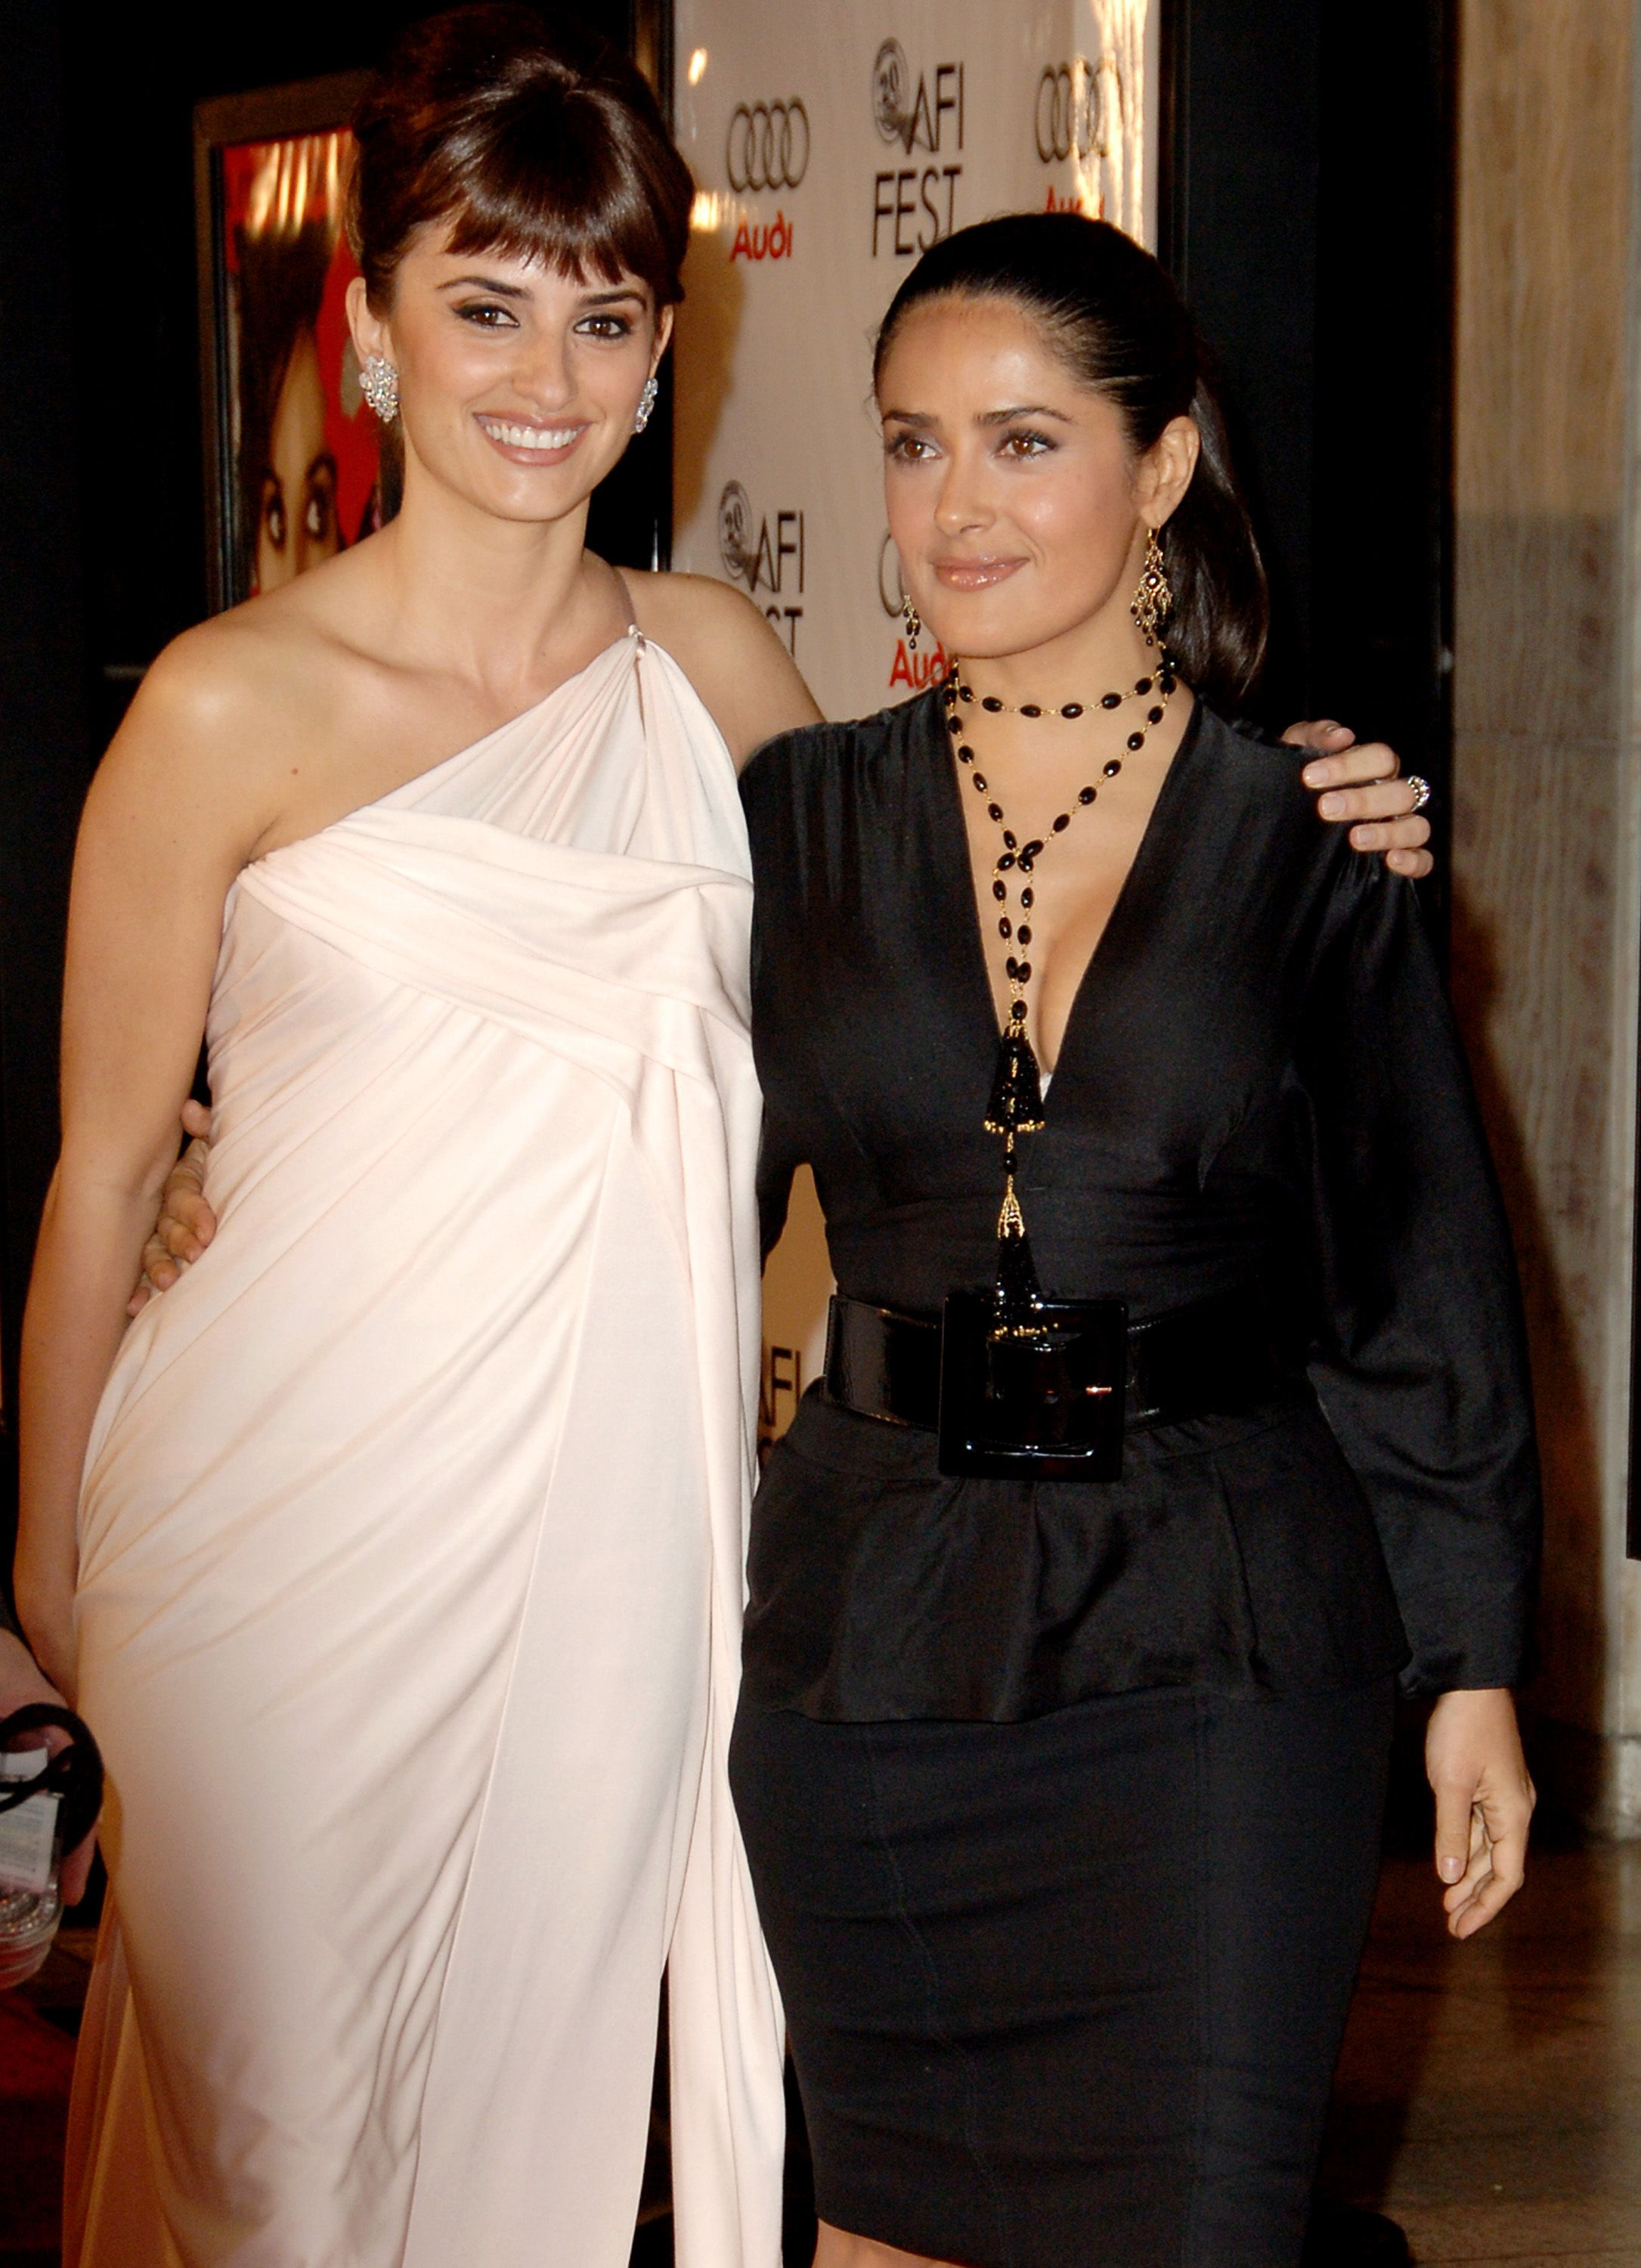 AFI Fest 2006 Presented by Audi Hosts a Tribute to Penelope Cruz and a Presentation of Volver